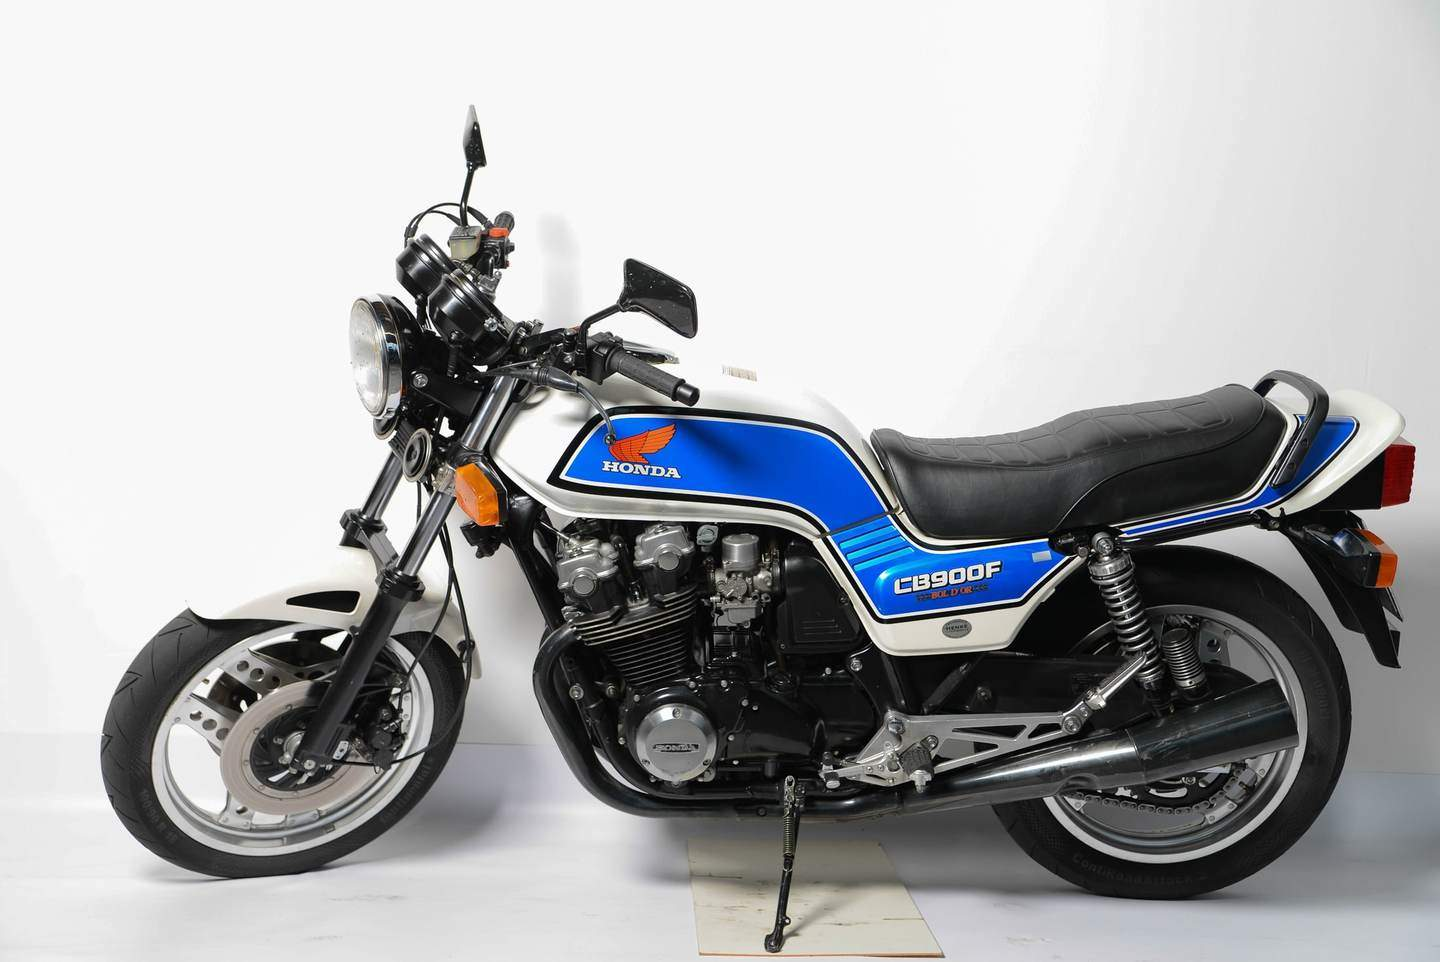 Honda CB 900 F - Bol d'Or mit Sportlerseele